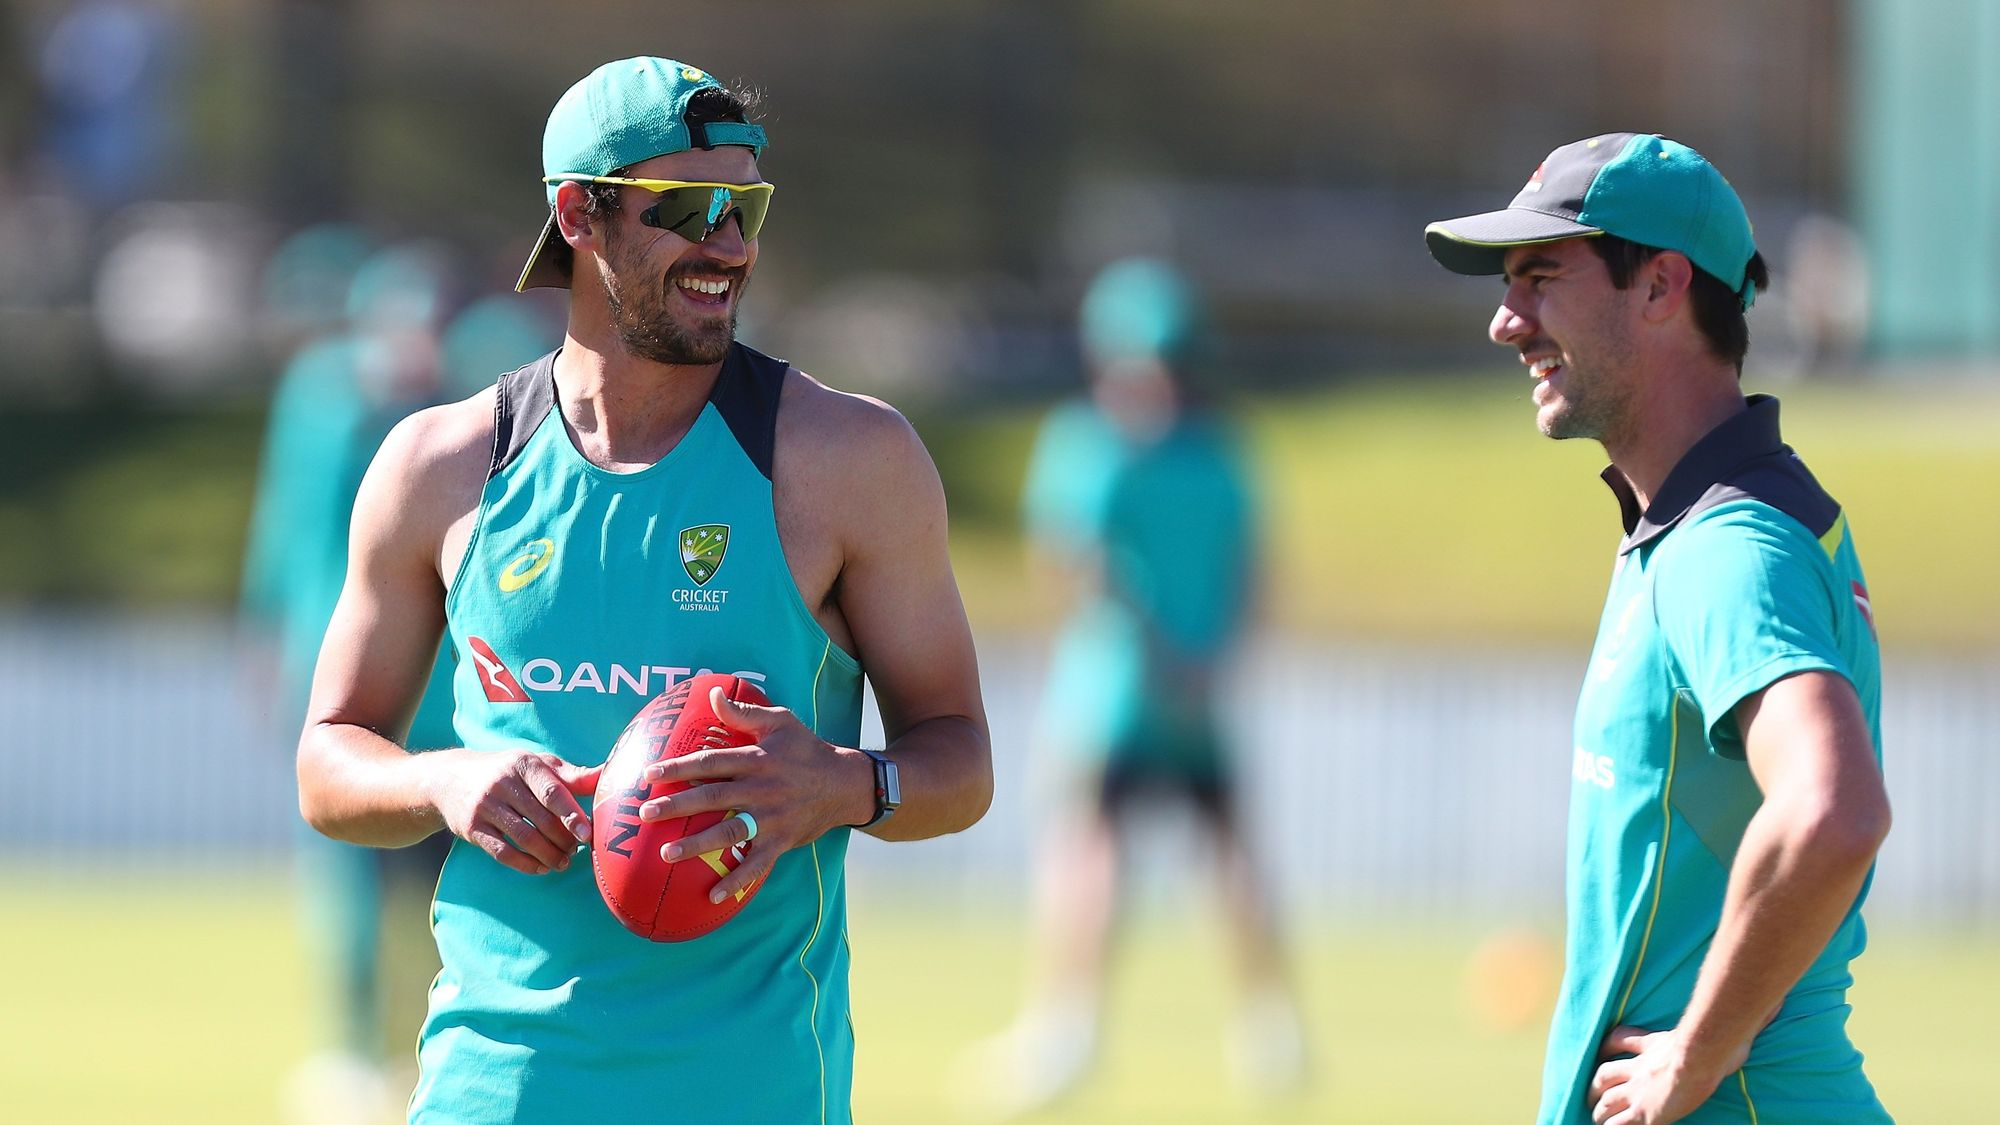 Australia training on specific skills to counter England's flat pitches